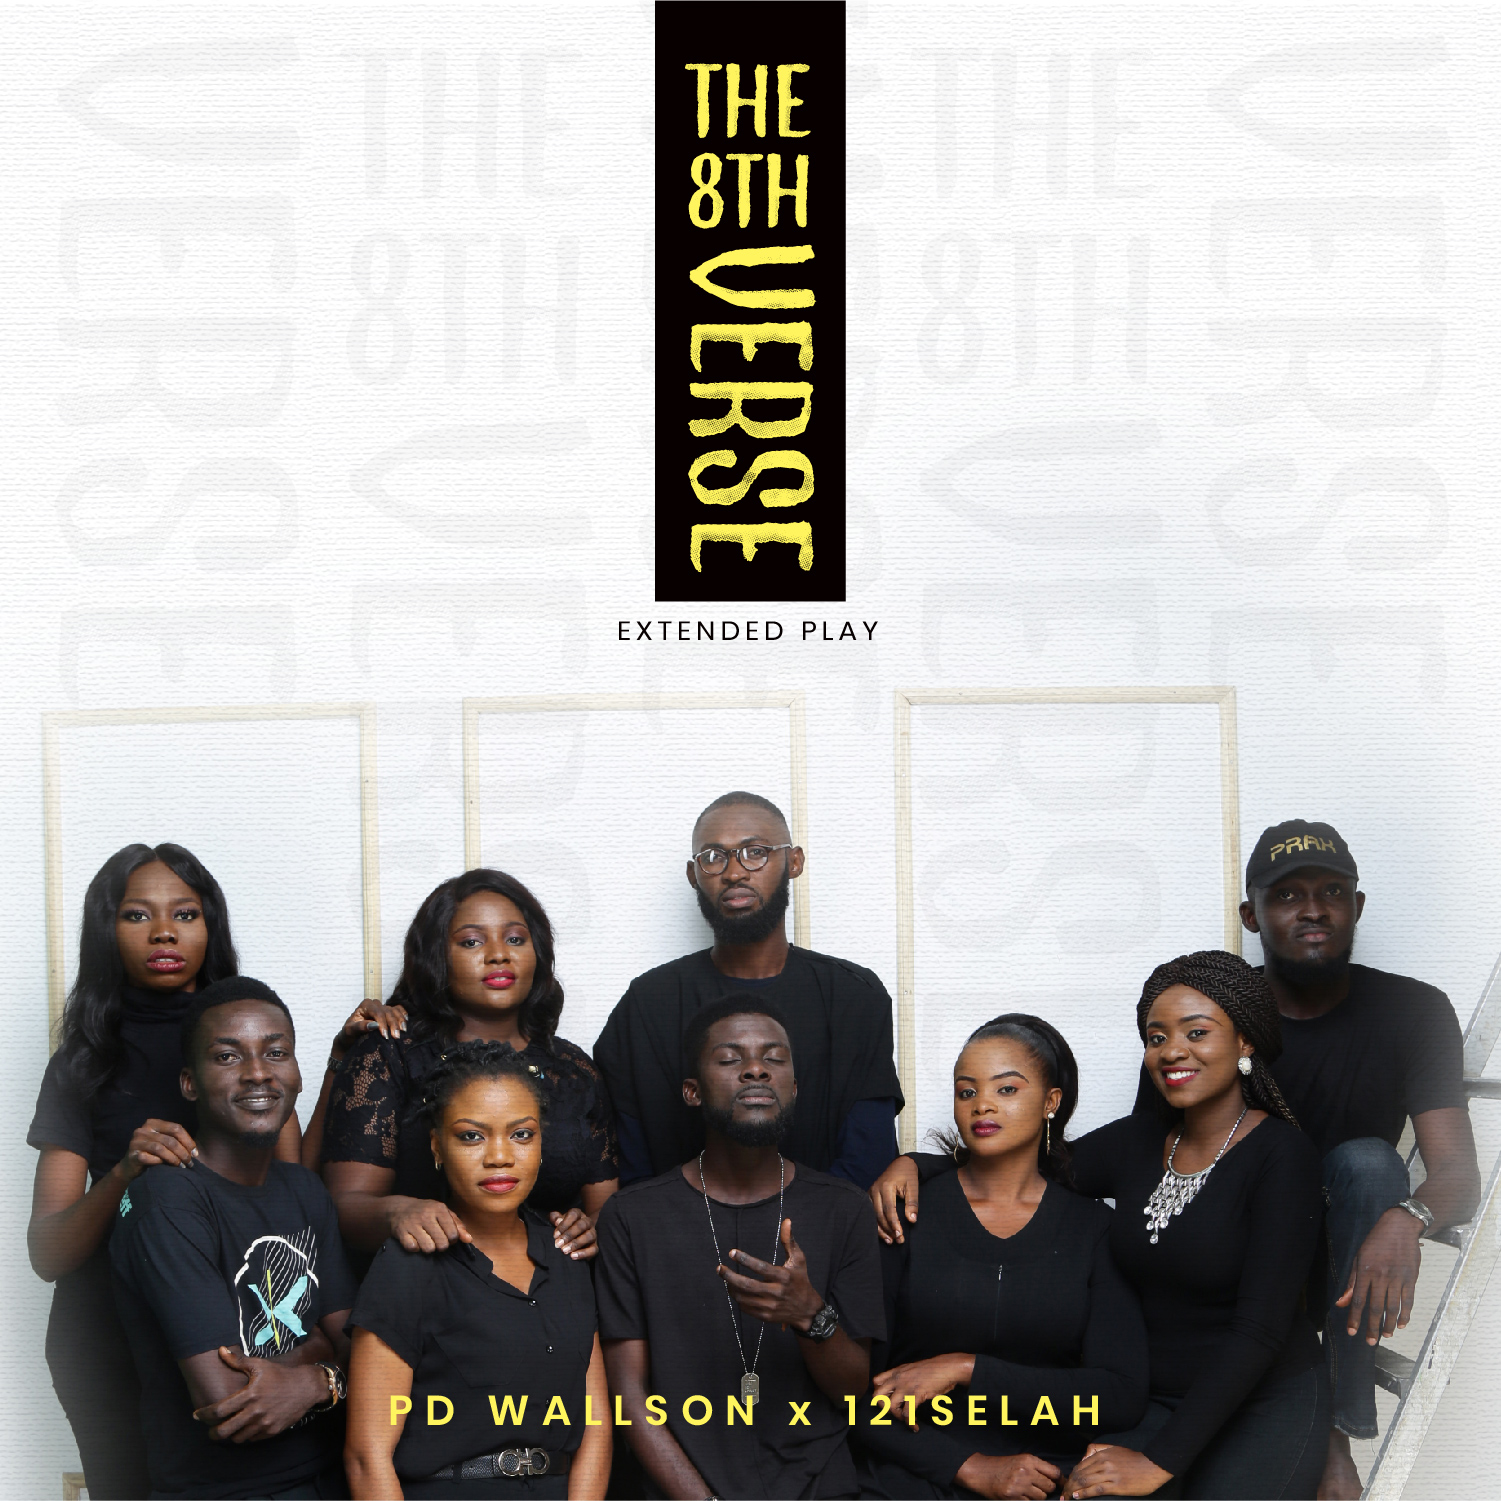 The 8th Verse – PD Wallson & 121selah | @121selah